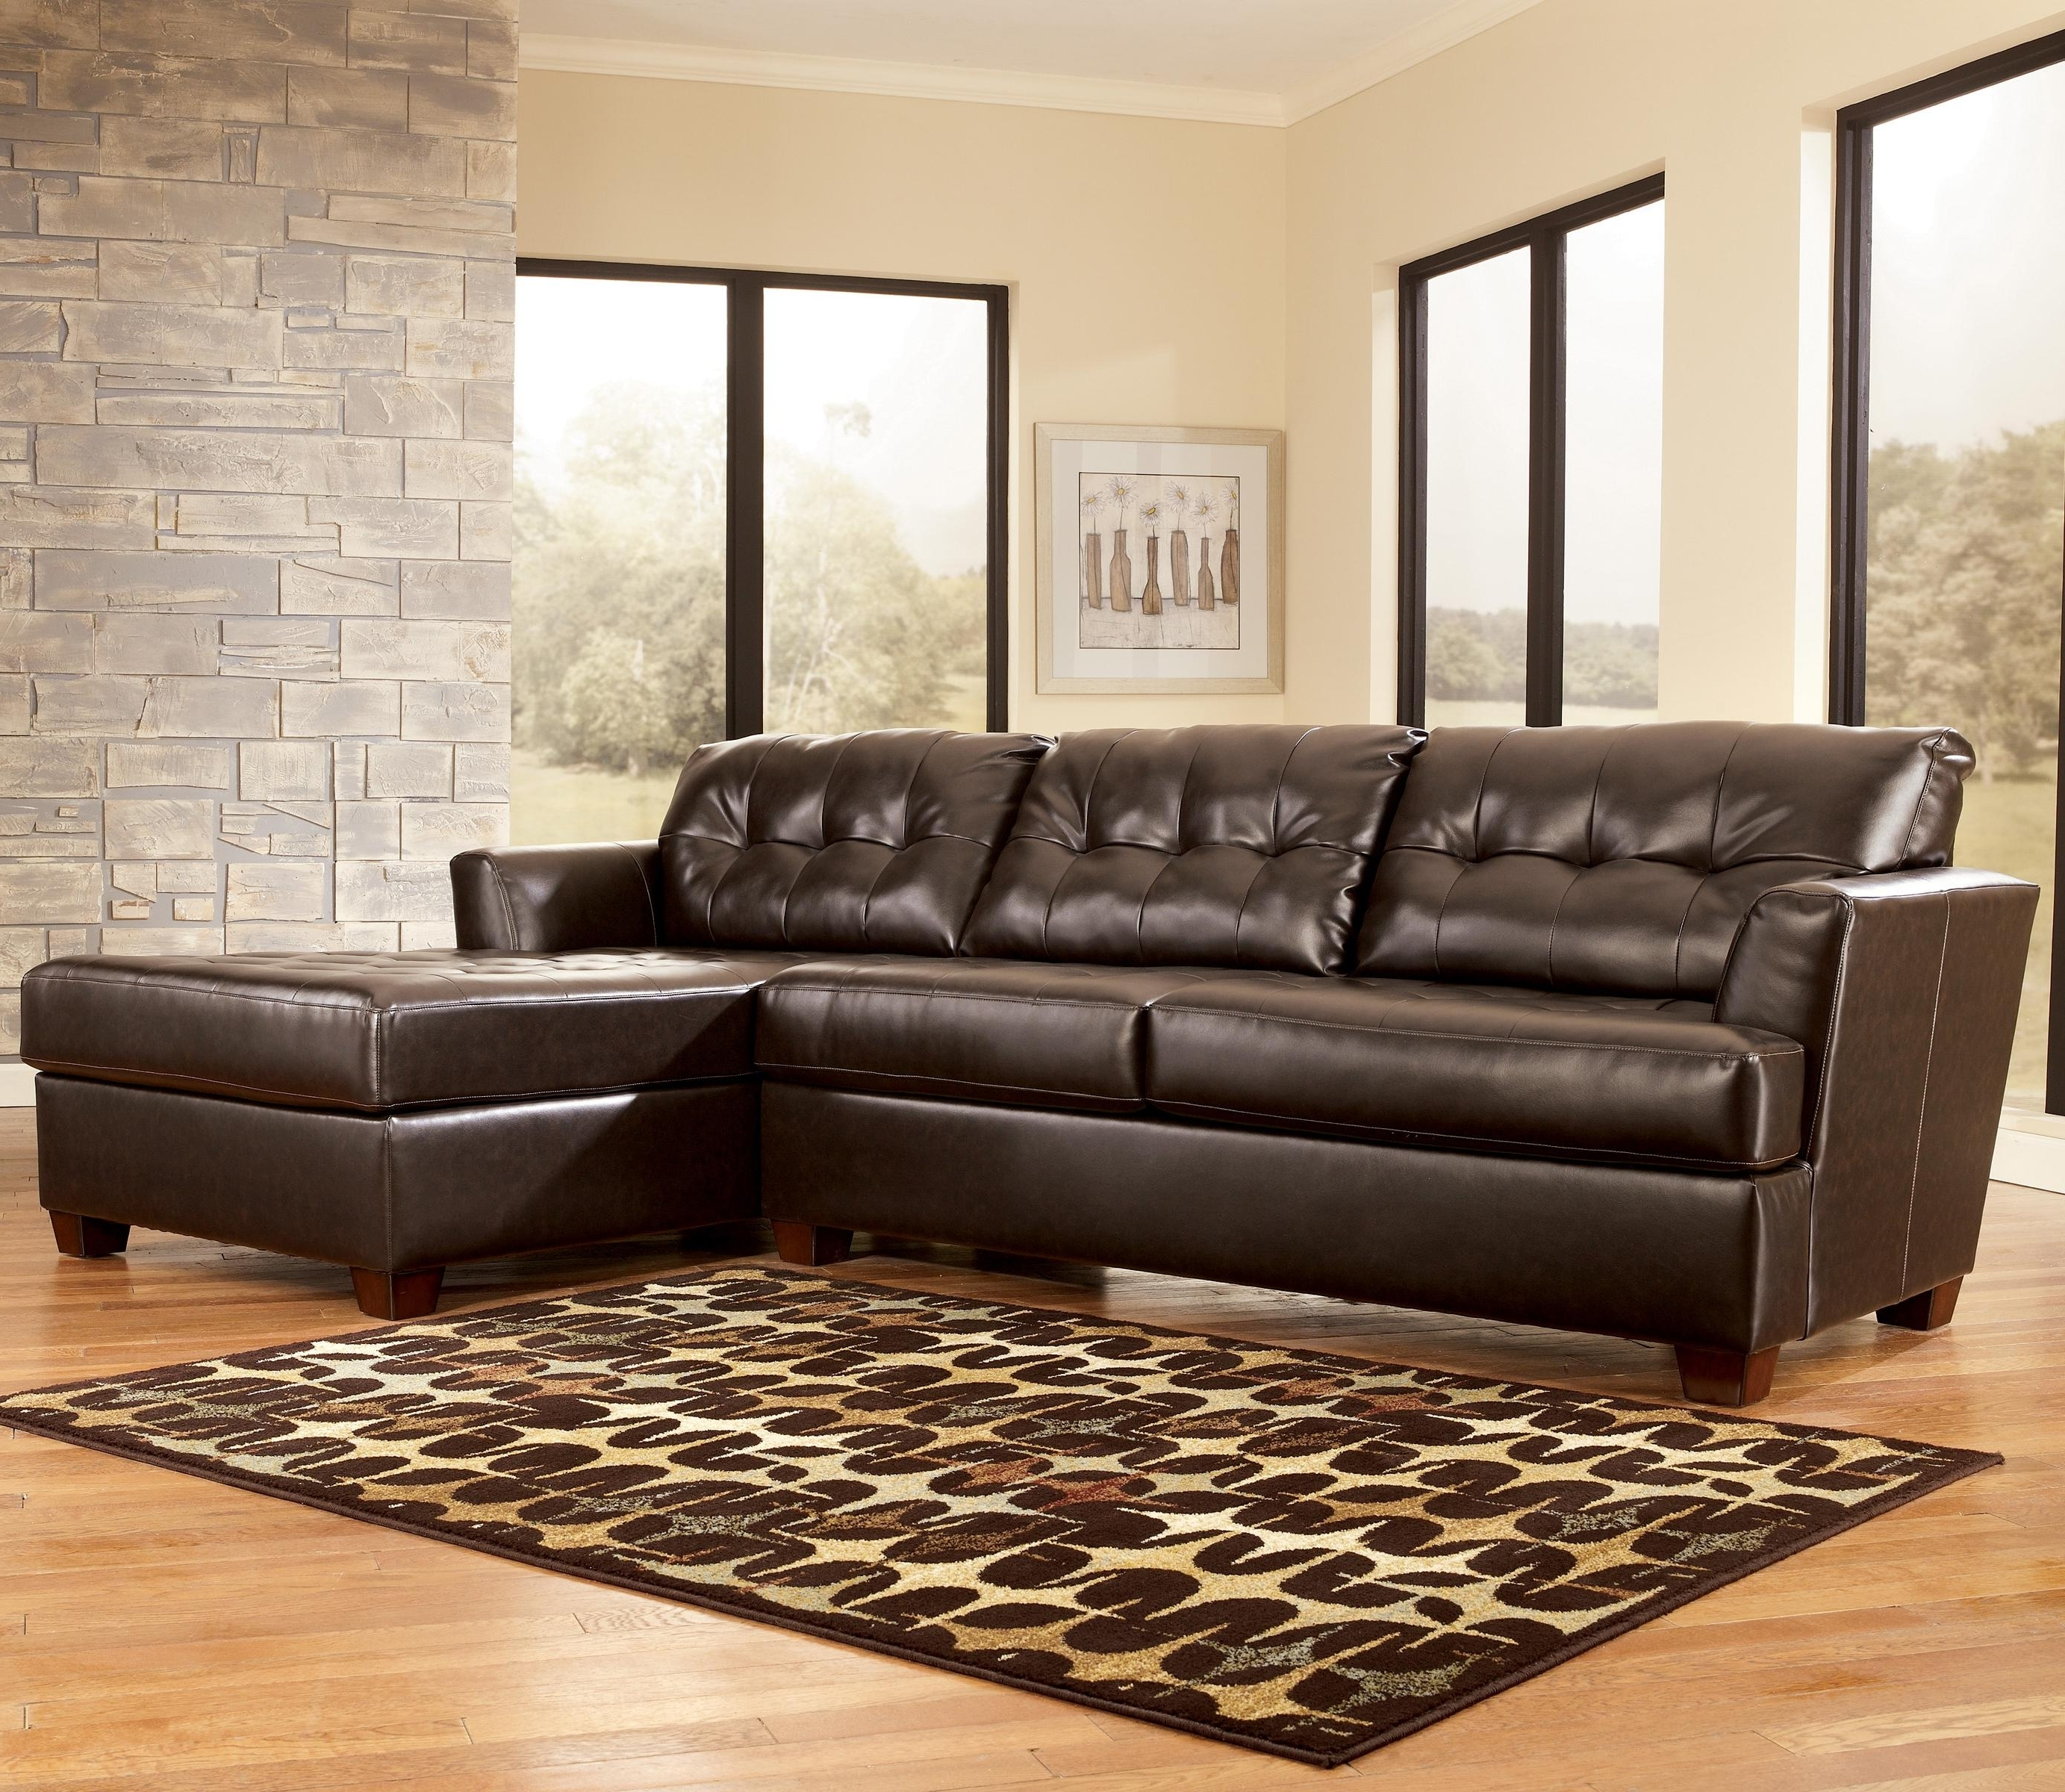 Current Home Furniture Sectional Sofas For Dixon Durablend – Chocolate Sectional Sofasignature Design (View 11 of 15)